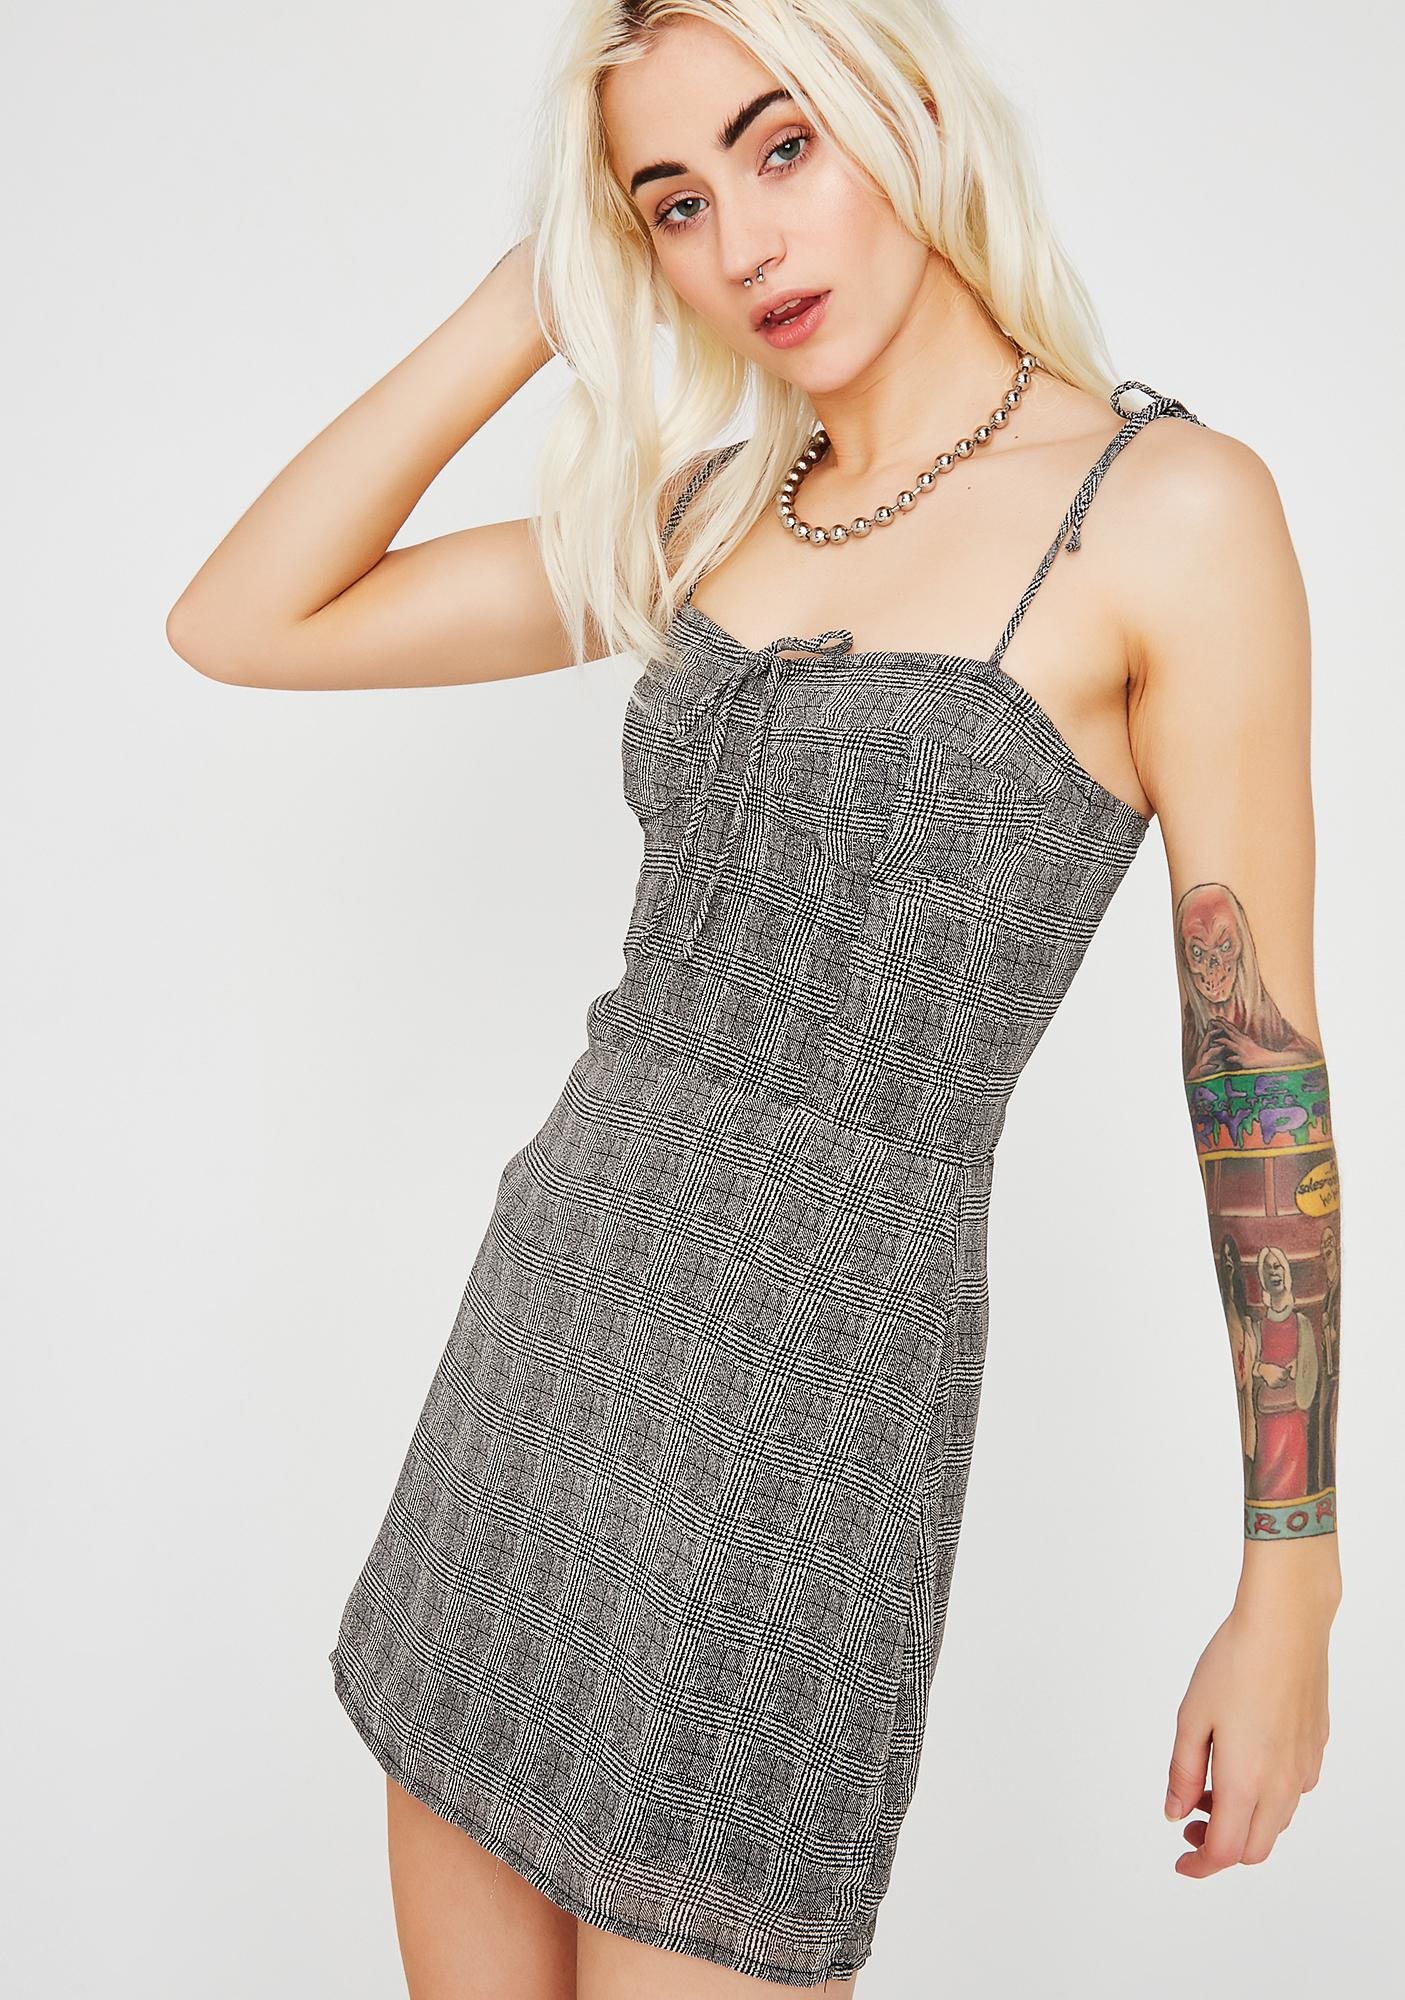 In Session Plaid Dress